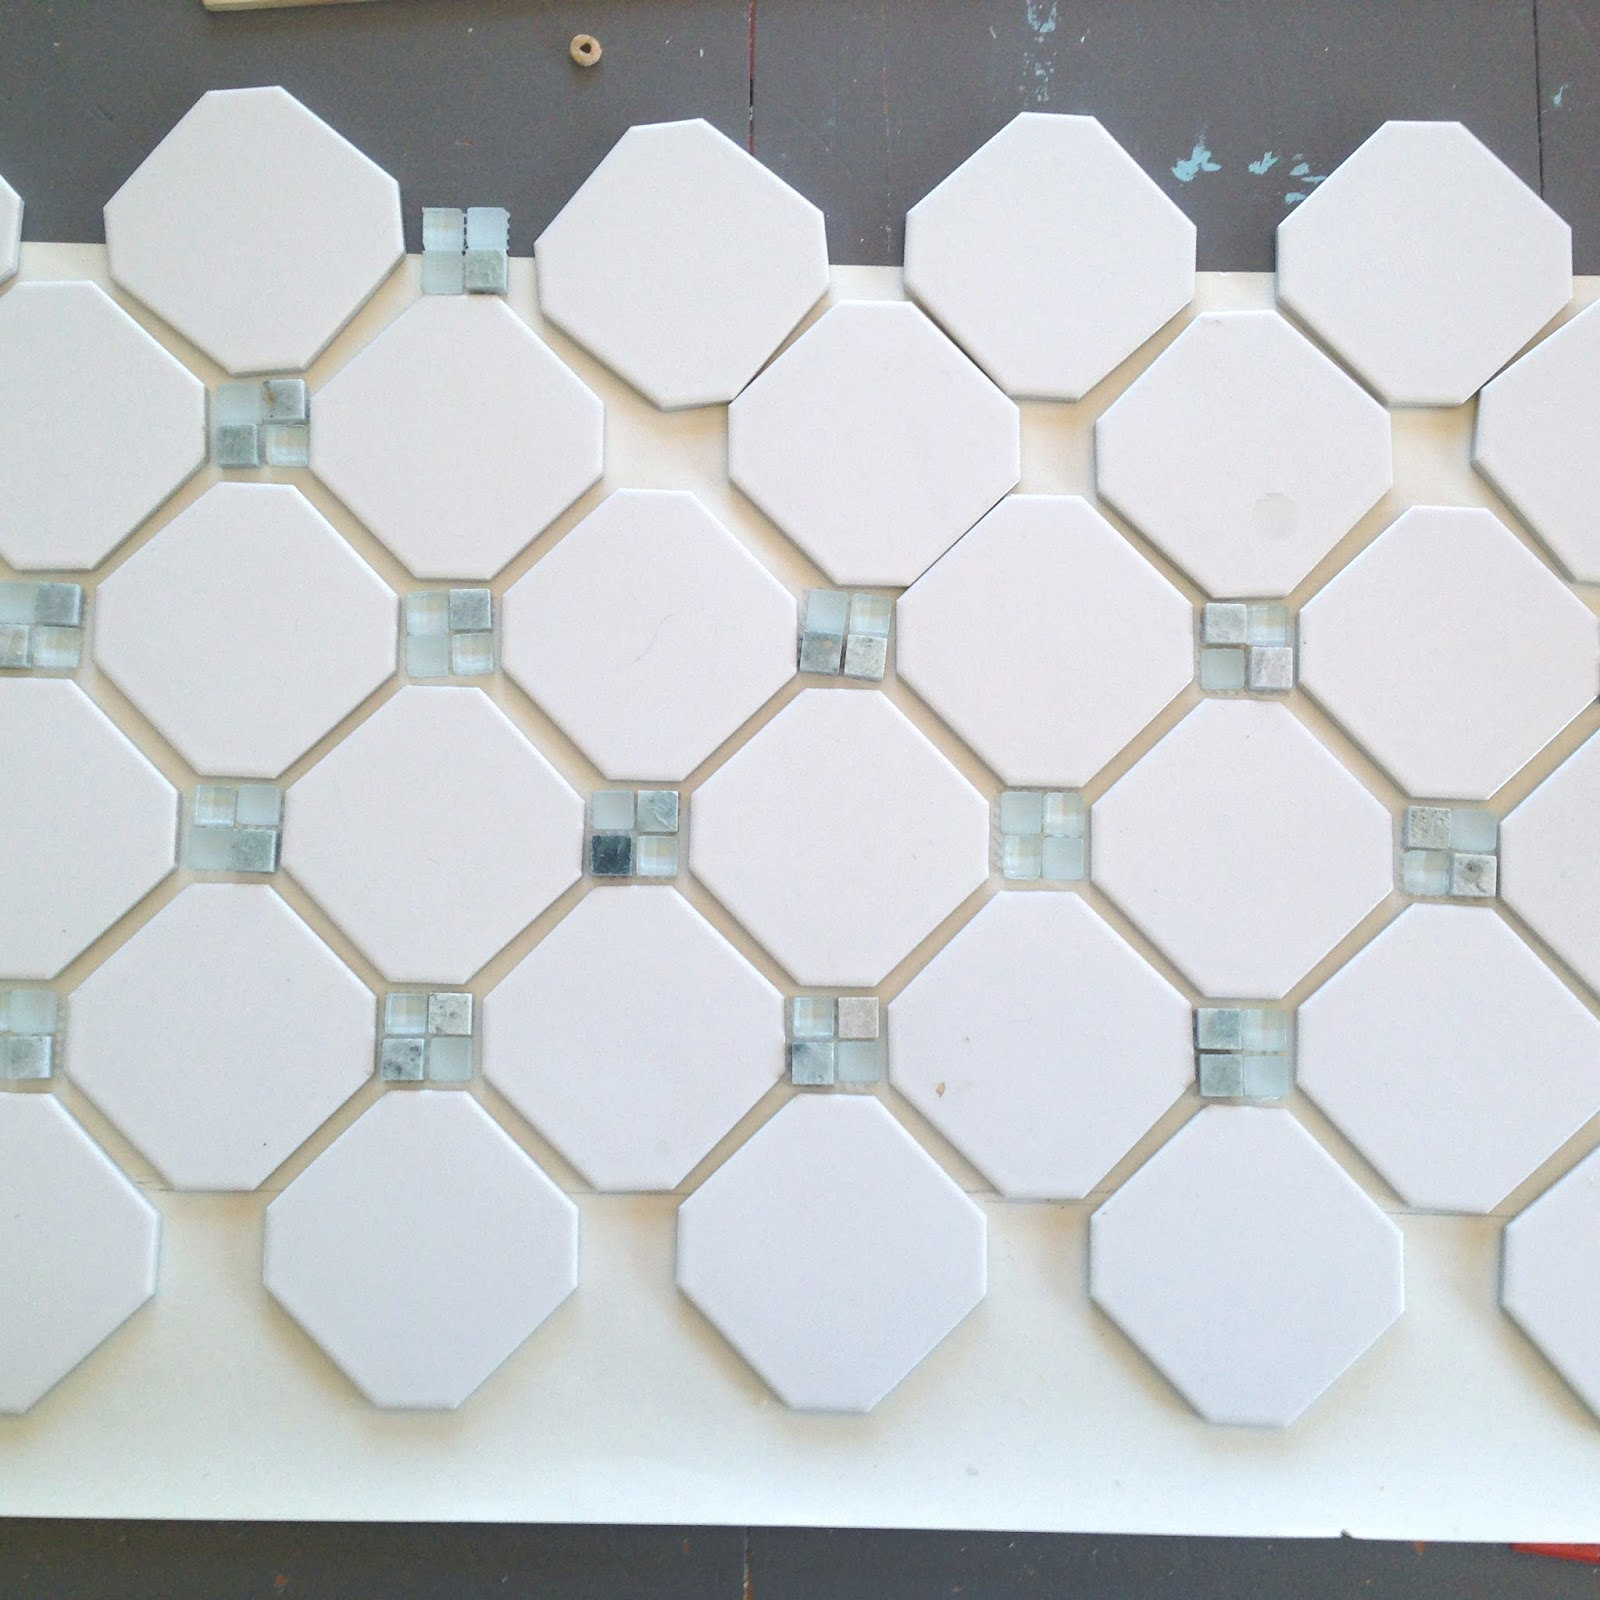 Fireplace makeover octagon dot tile averie lane fireplace laying out an octagon and dot pattern white matte finish octagon tile and natural stone dailygadgetfo Gallery